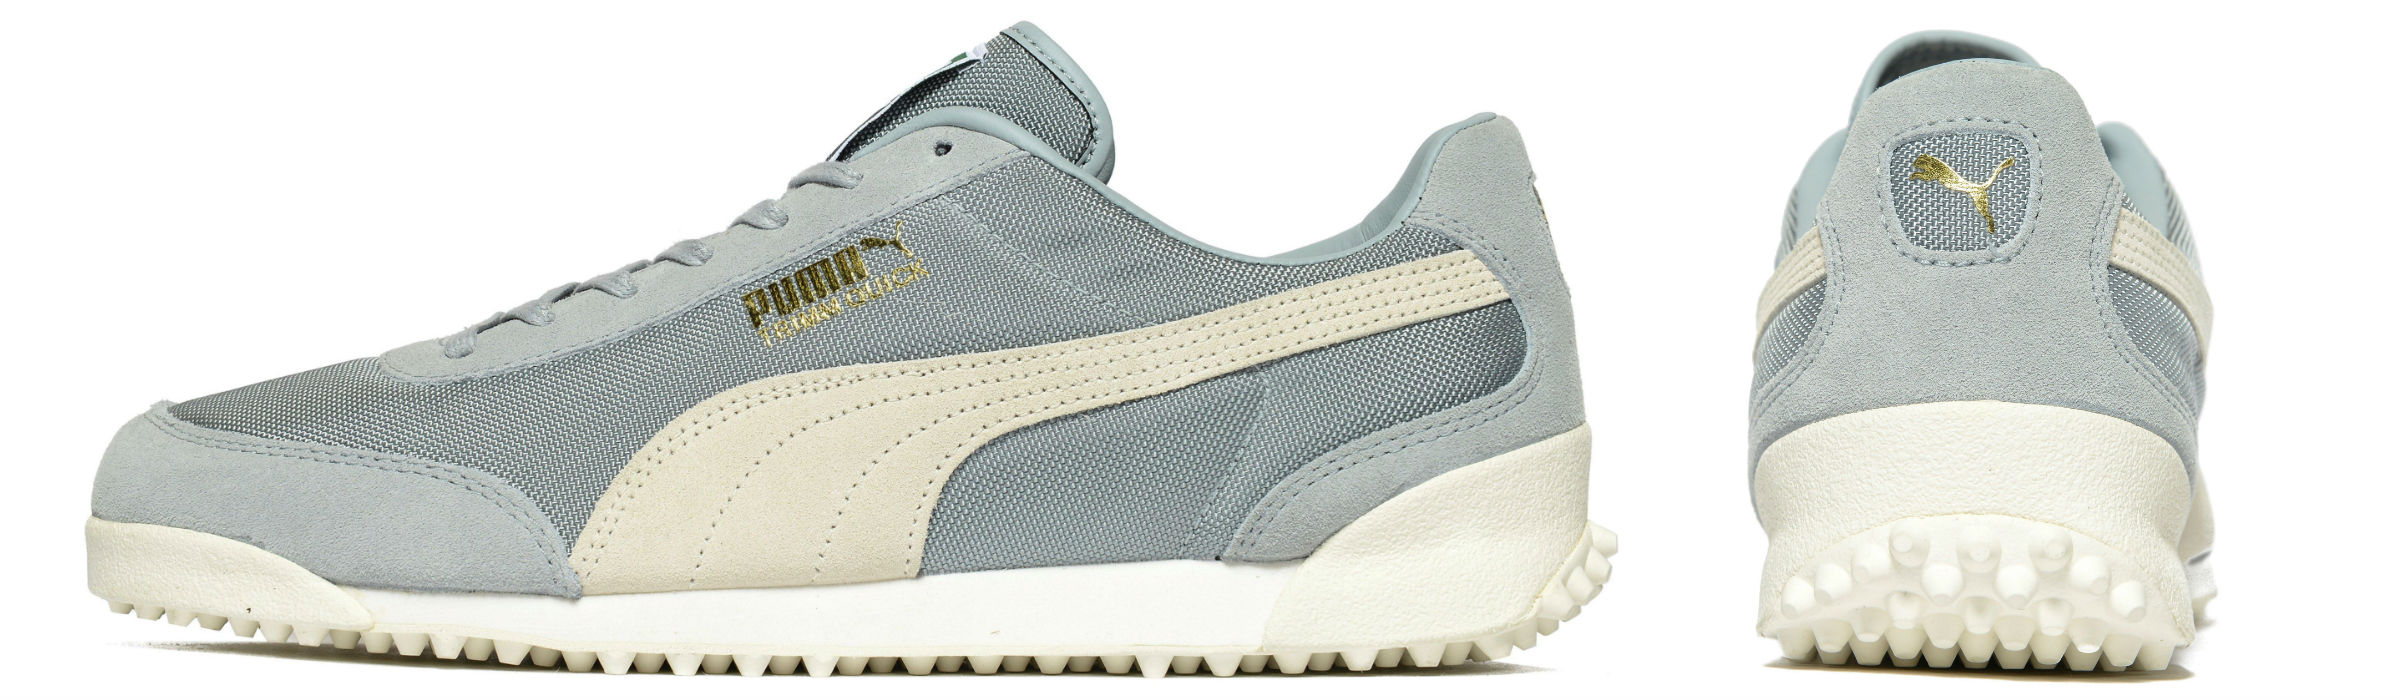 Puma Trimm Quick Nylon Quarry Whisper White Gold Full